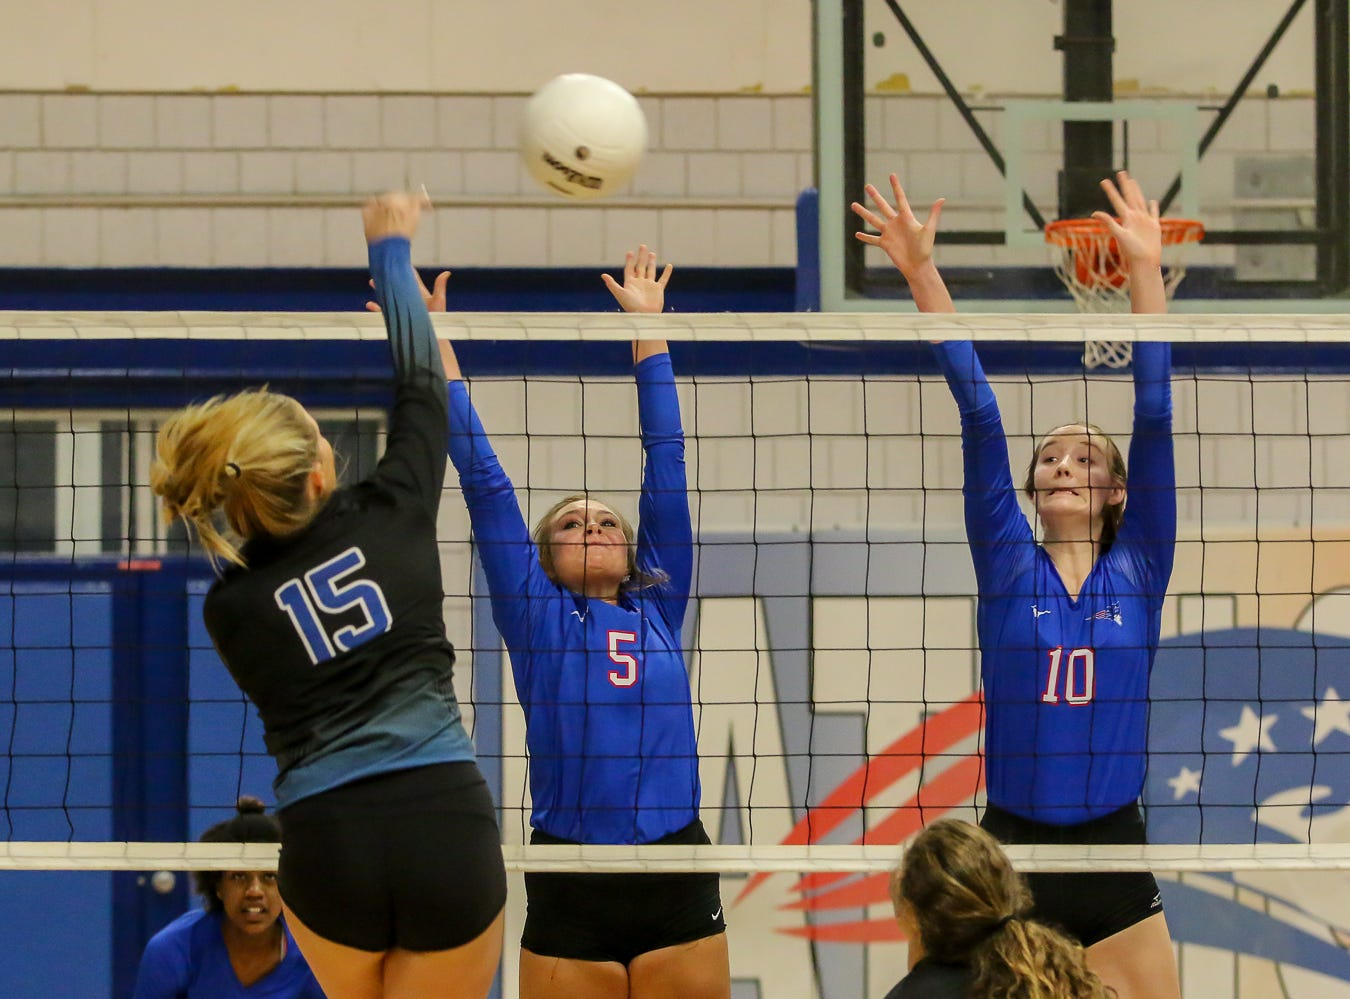 Washington's Brantley Haferkamp (15) gets the ball passed Pace's Grace McCammon (5) and Willow Sinkus Blackburn (10) in the District 1-7A championship game at Pace High School on Thursday, October 18, 2018. The Patriots beat the Wildcats in three straight sets and earned their second district title in a row.